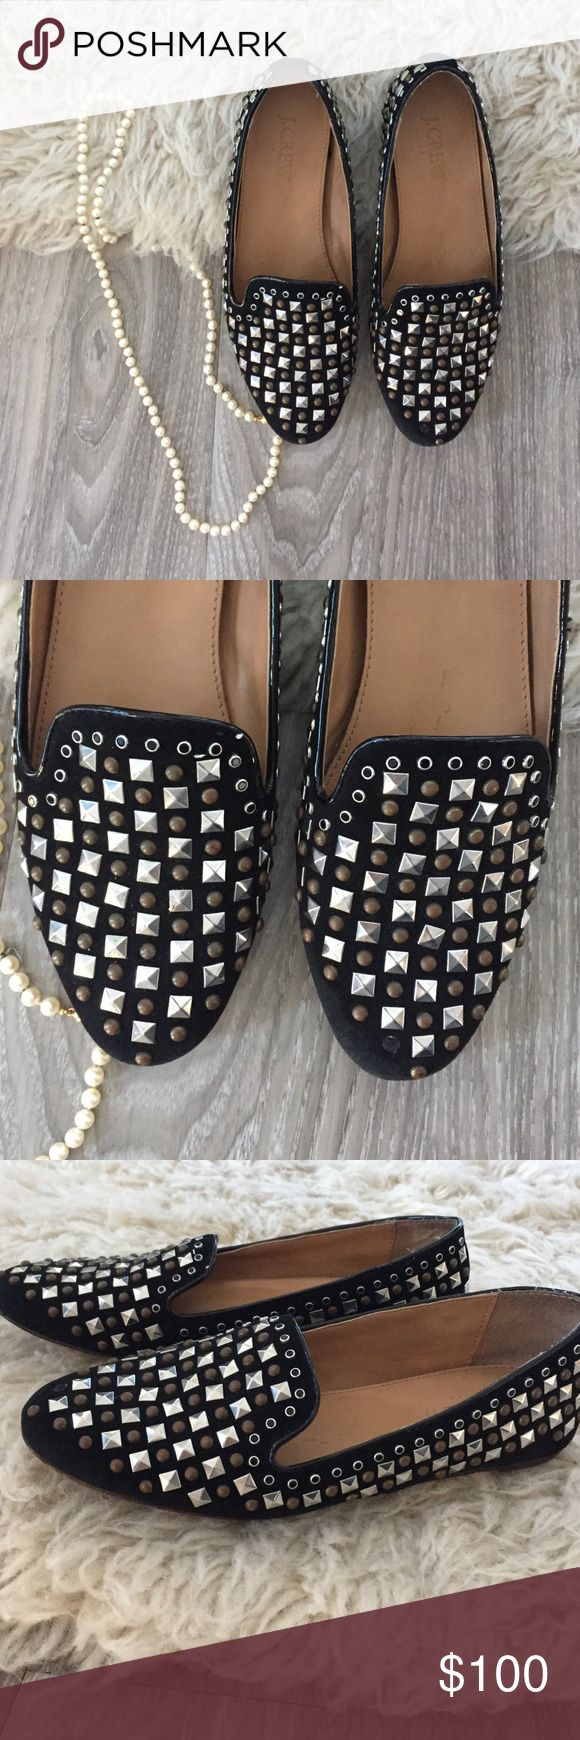 J. Crew Collection Darby Studded Loafers The soldout J. Crew Collection Darby Studded Loafers! In excellent used condition, no wear on tops or sides but wear on the soles. Crafted in medal-and-crystal studded suede. J. Crew Shoes Flats & Loafers